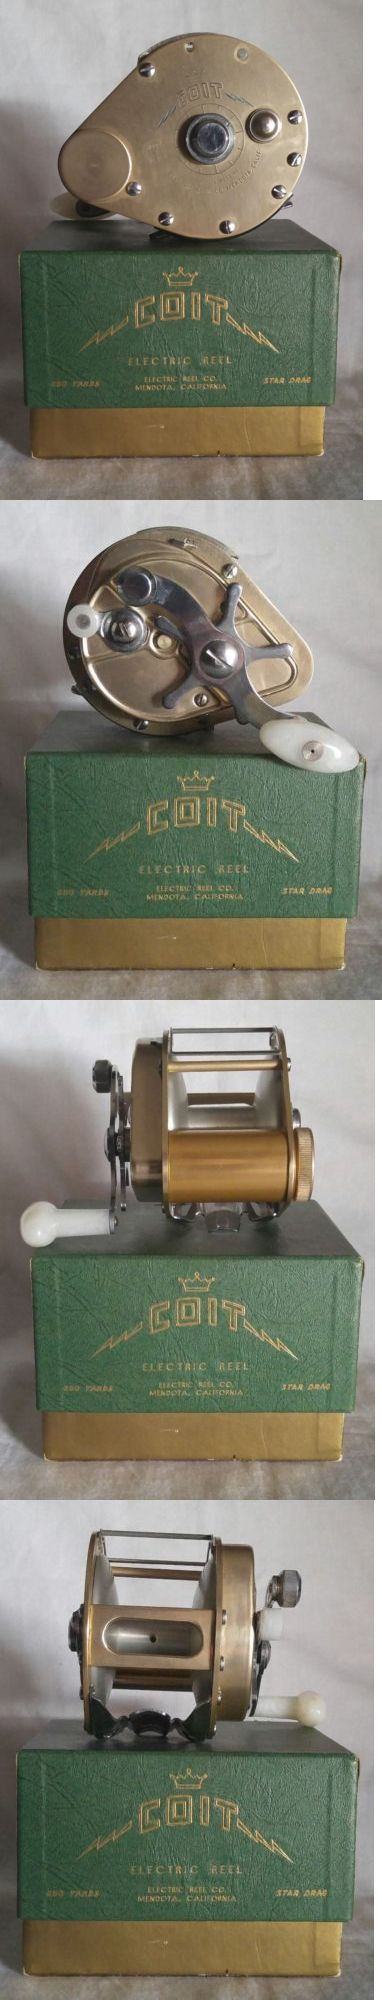 Other Vintage Fishing Reels 11143: Coit Model E Electric Fishing Reel Made In Mendota, Ca Circa 1953 Gold Model Nib BUY IT NOW ONLY: $175.0